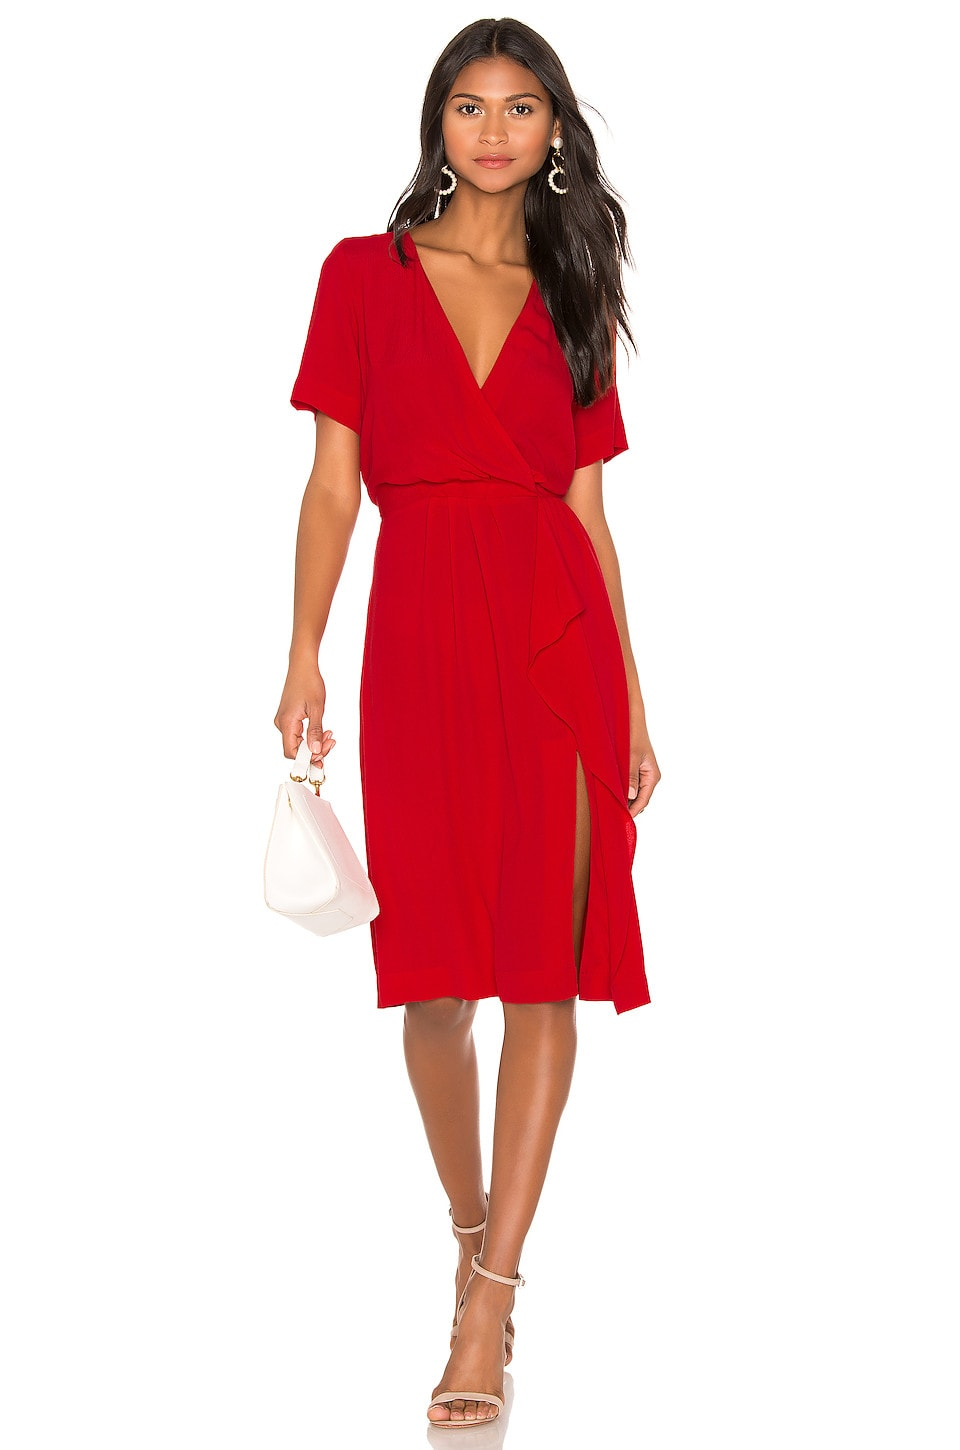 Yumi Kim Mimosa Dress in Scarlet